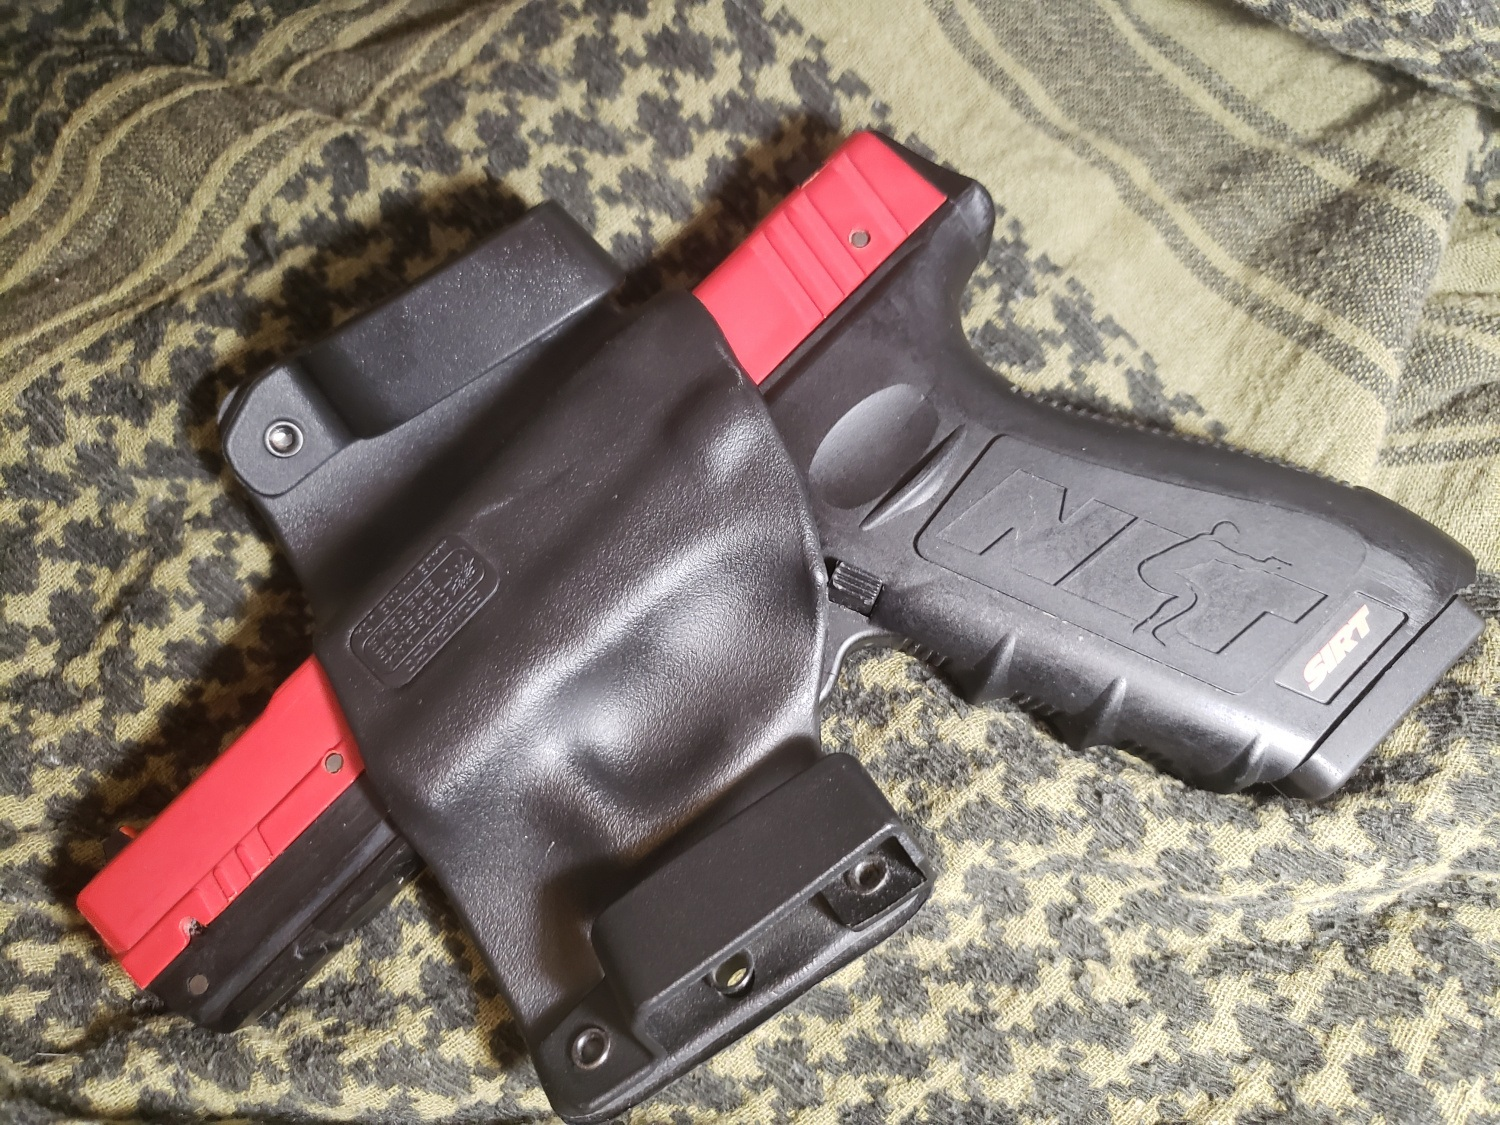 OWB COMPACT HOLSTER by Phalanx Defense Systems, left side